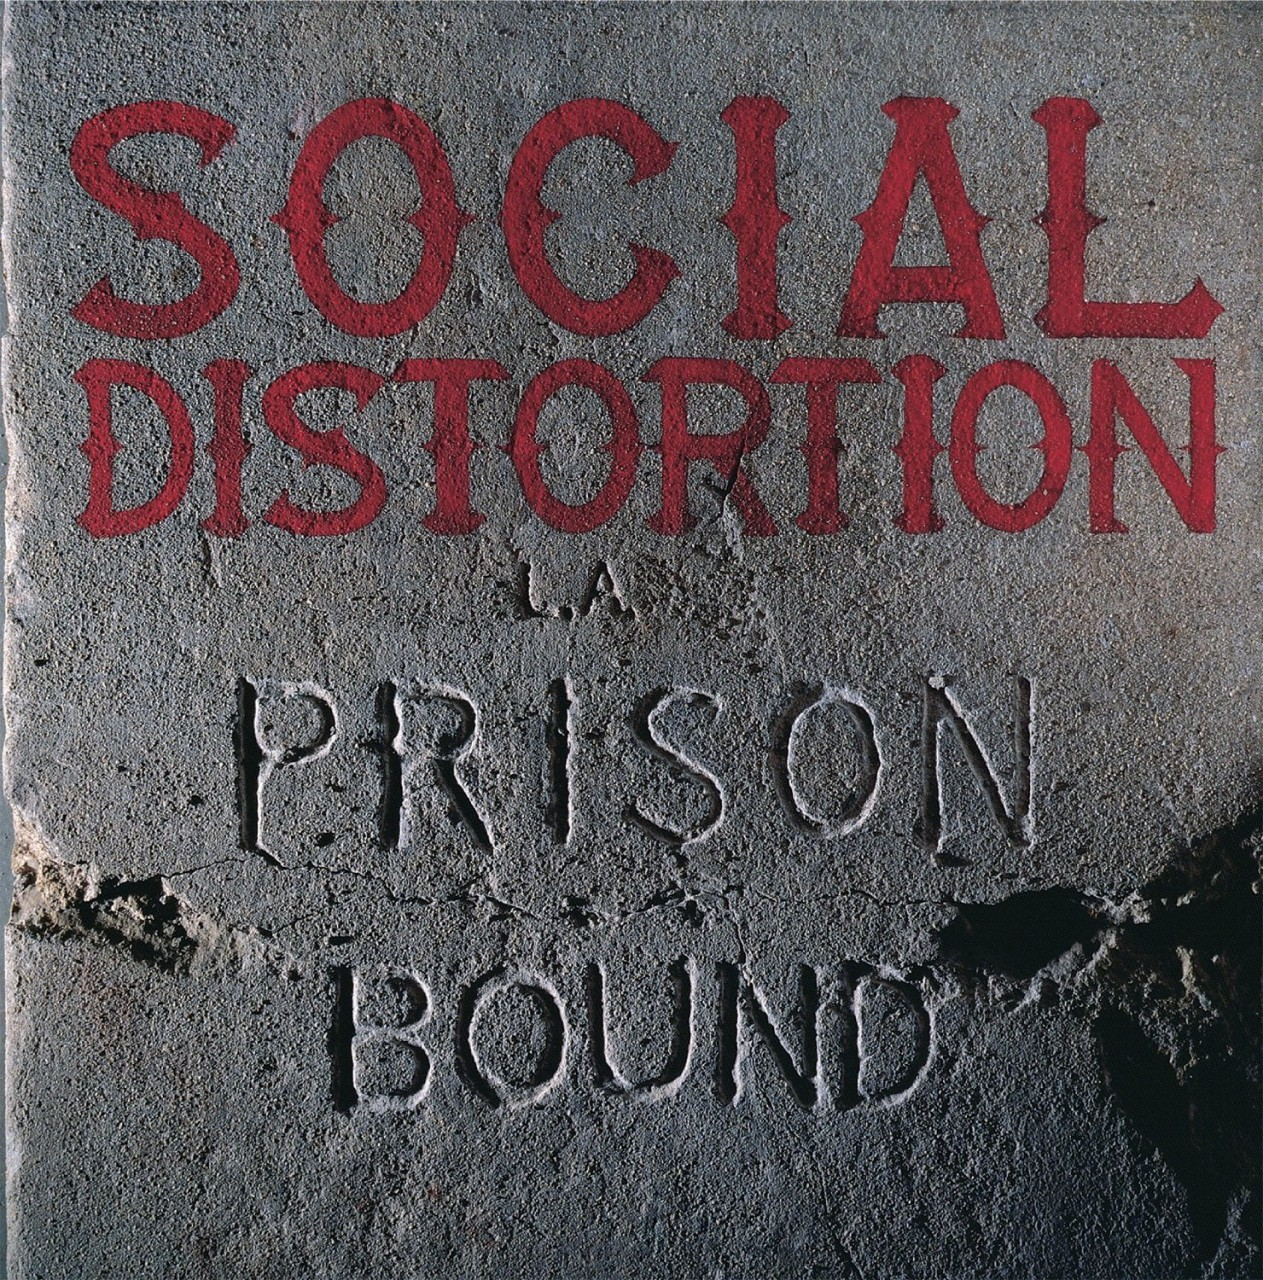 Social Distortion - Prison Bound LP